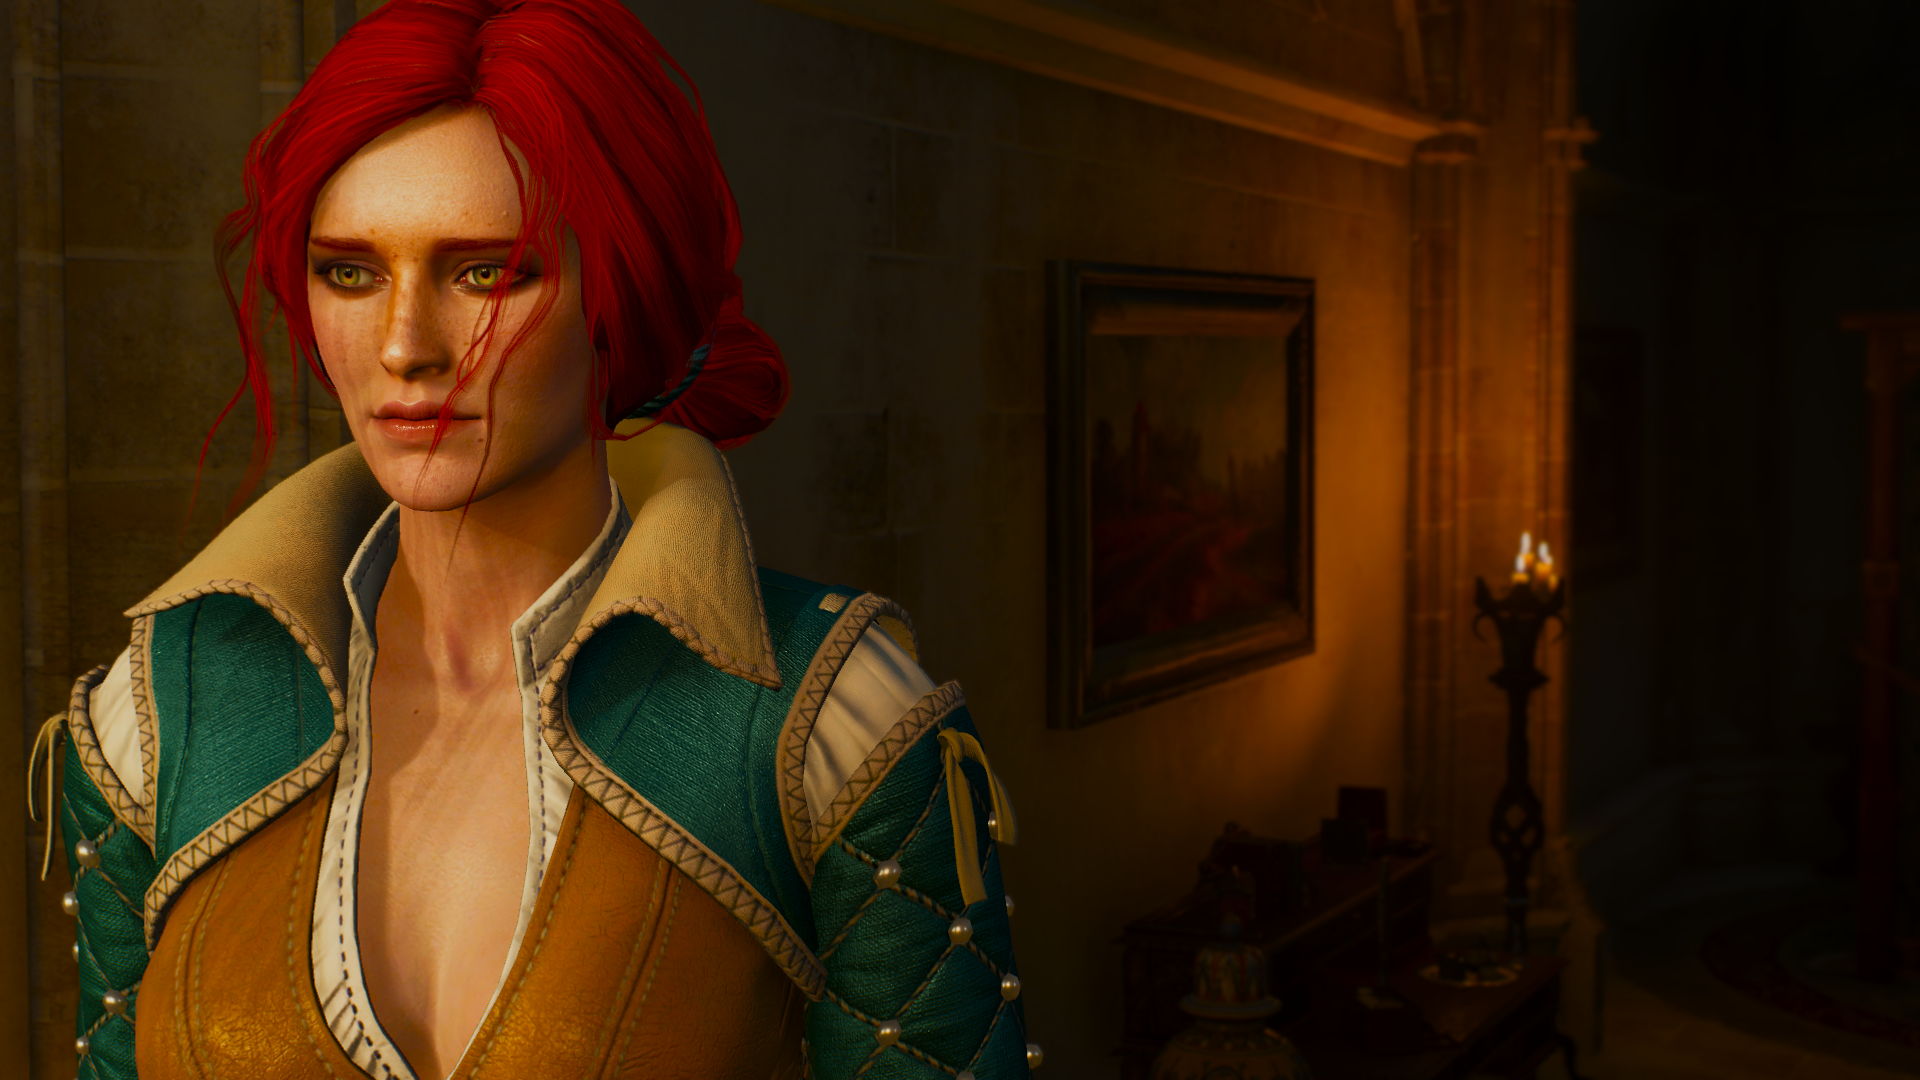 NyIe9jk.png - Witcher 3: Wild Hunt, the